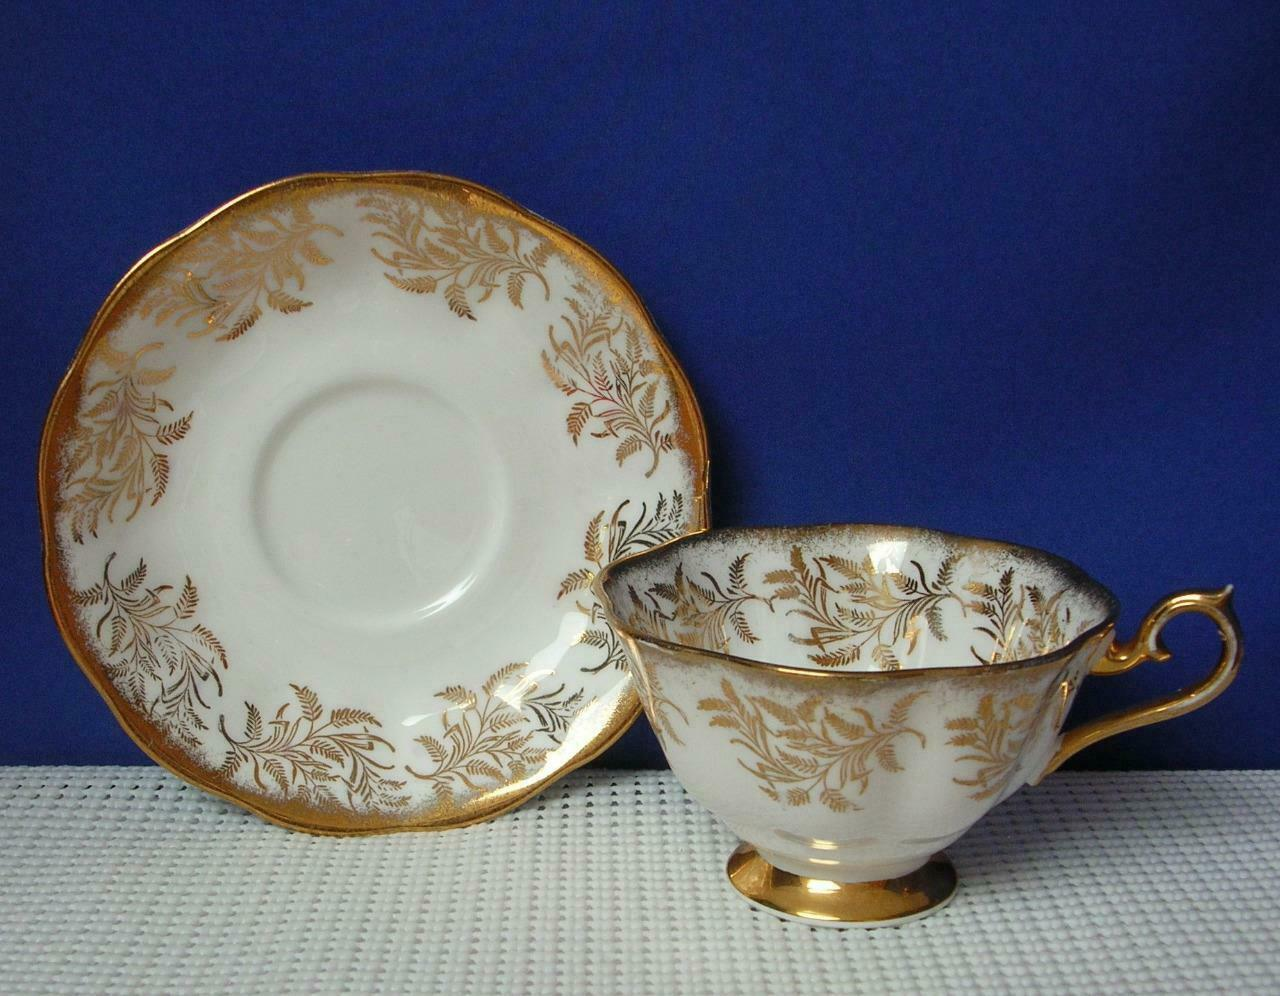 Primary image for Vintage ROYAL ALBERT Gold Feather Leaf Footed TEA CUP & SAUCER #4040 EUC